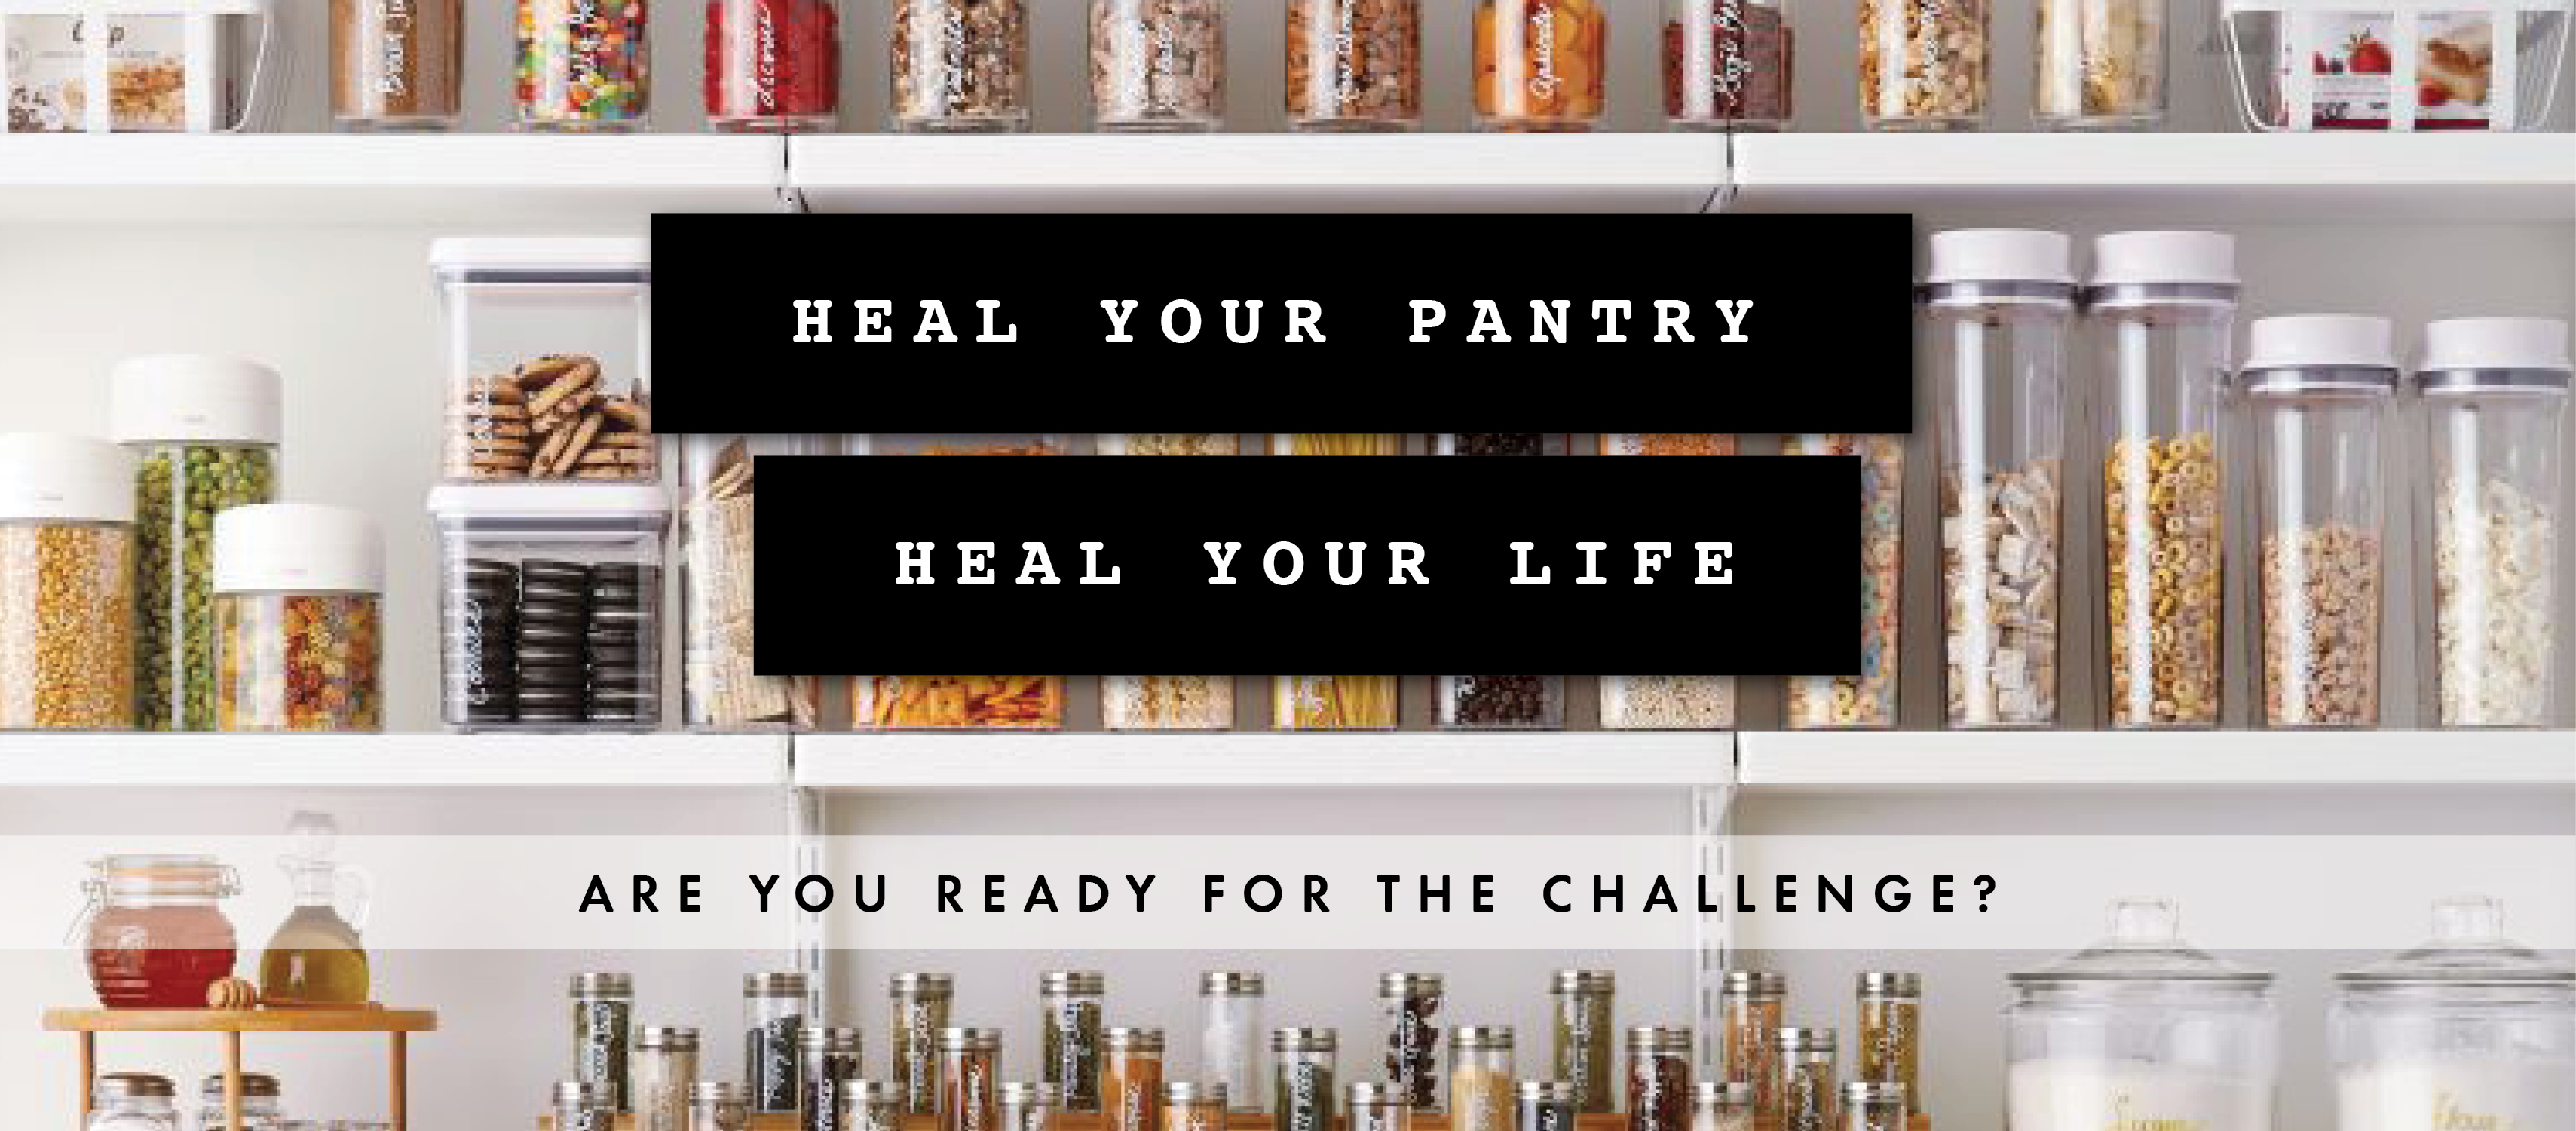 Heal your pantry, heal your life